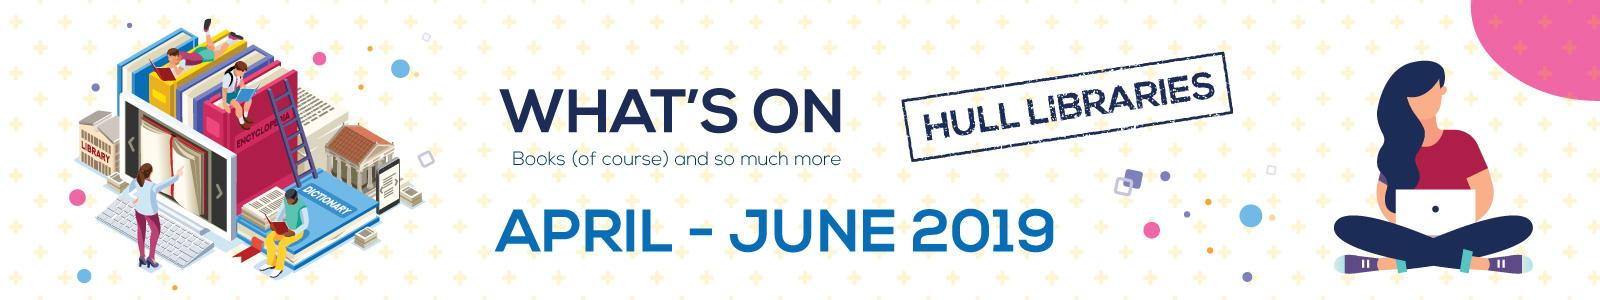 WHAT'S ON AT HULL LIBRARIES - APRIL - JUNE 2019